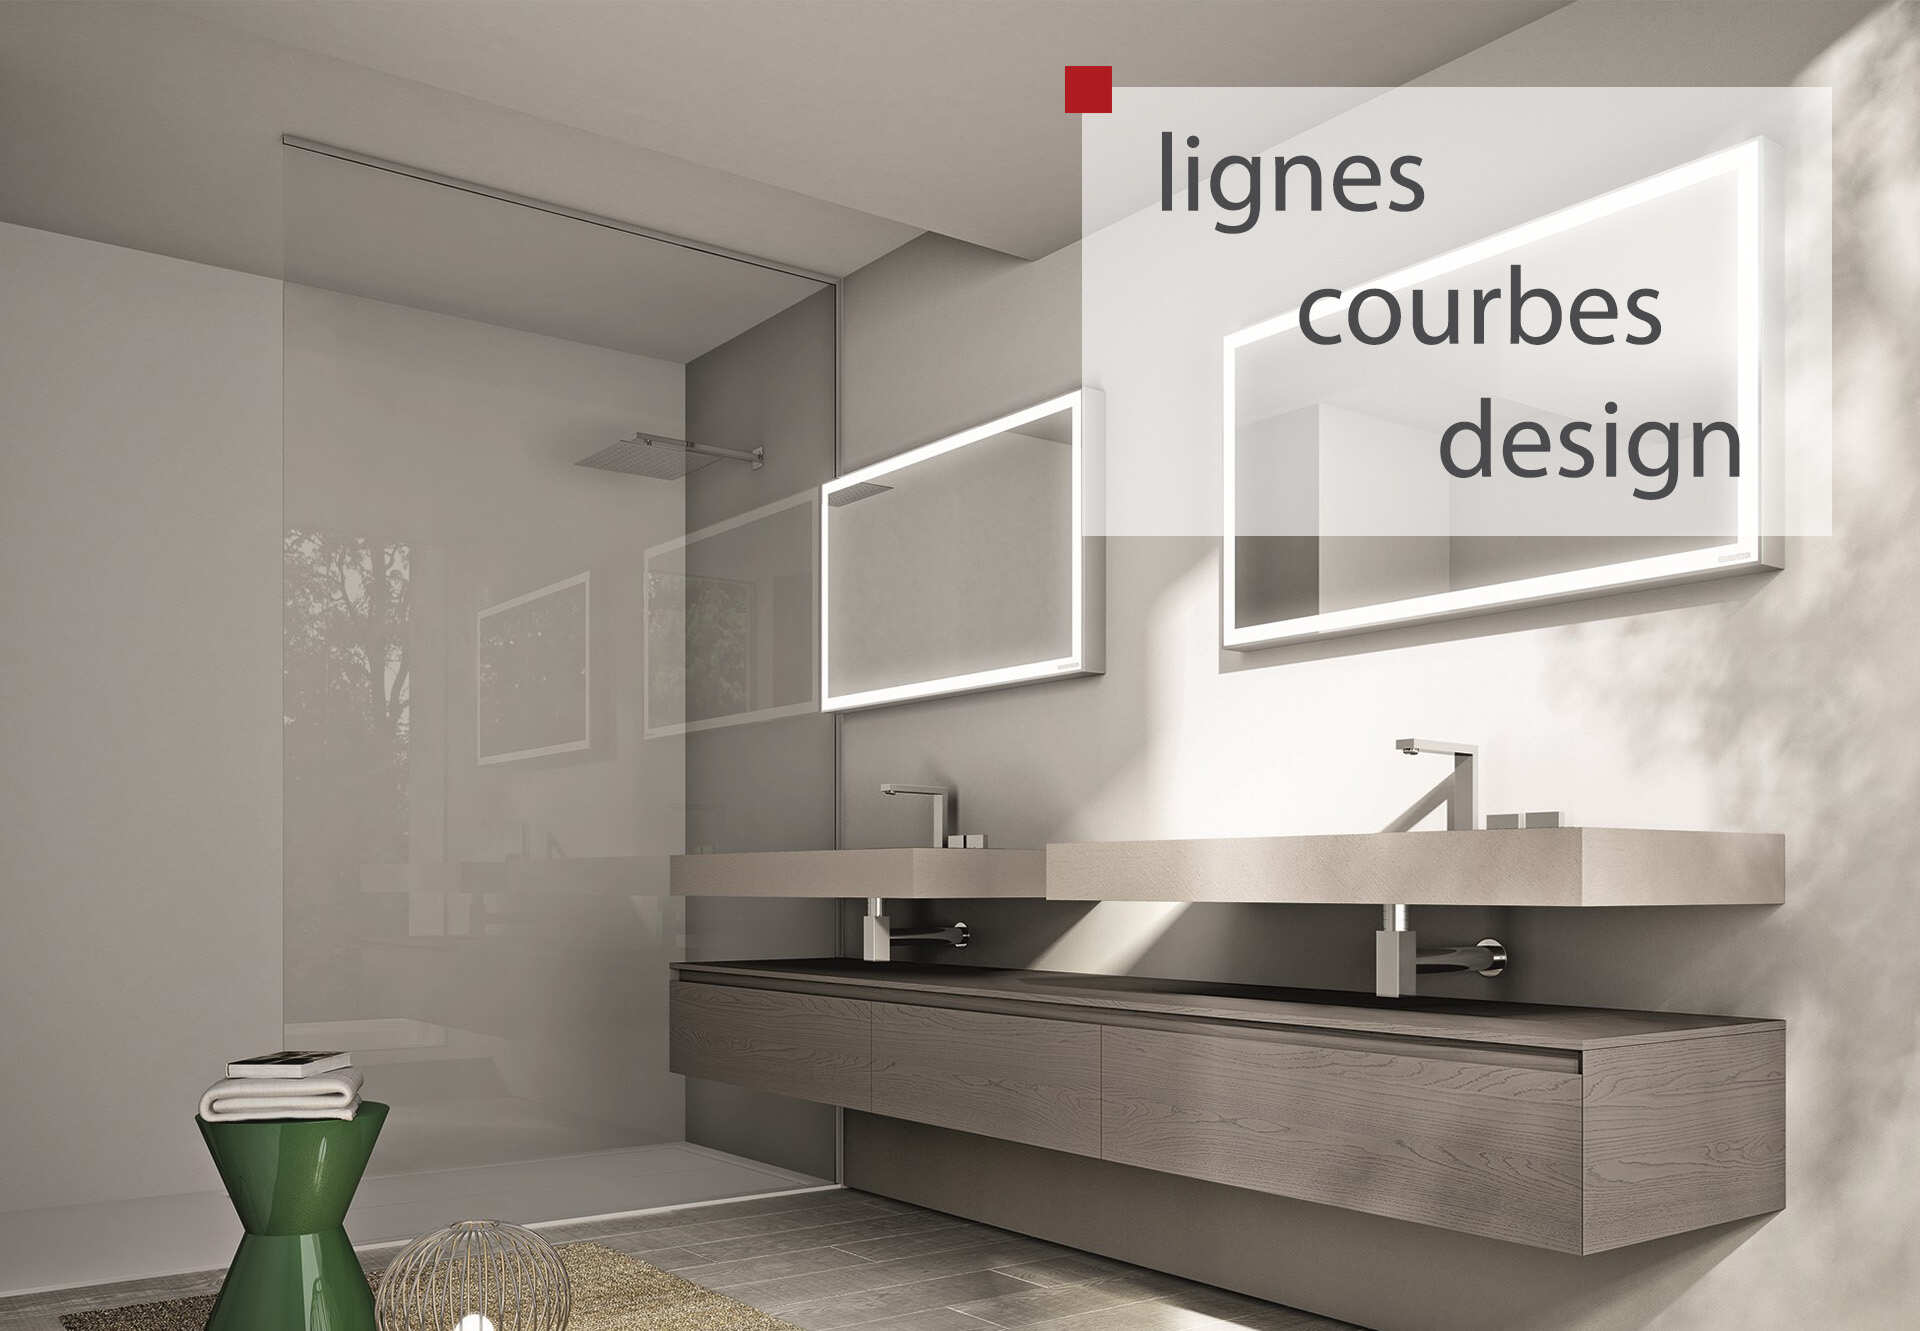 Courbes design